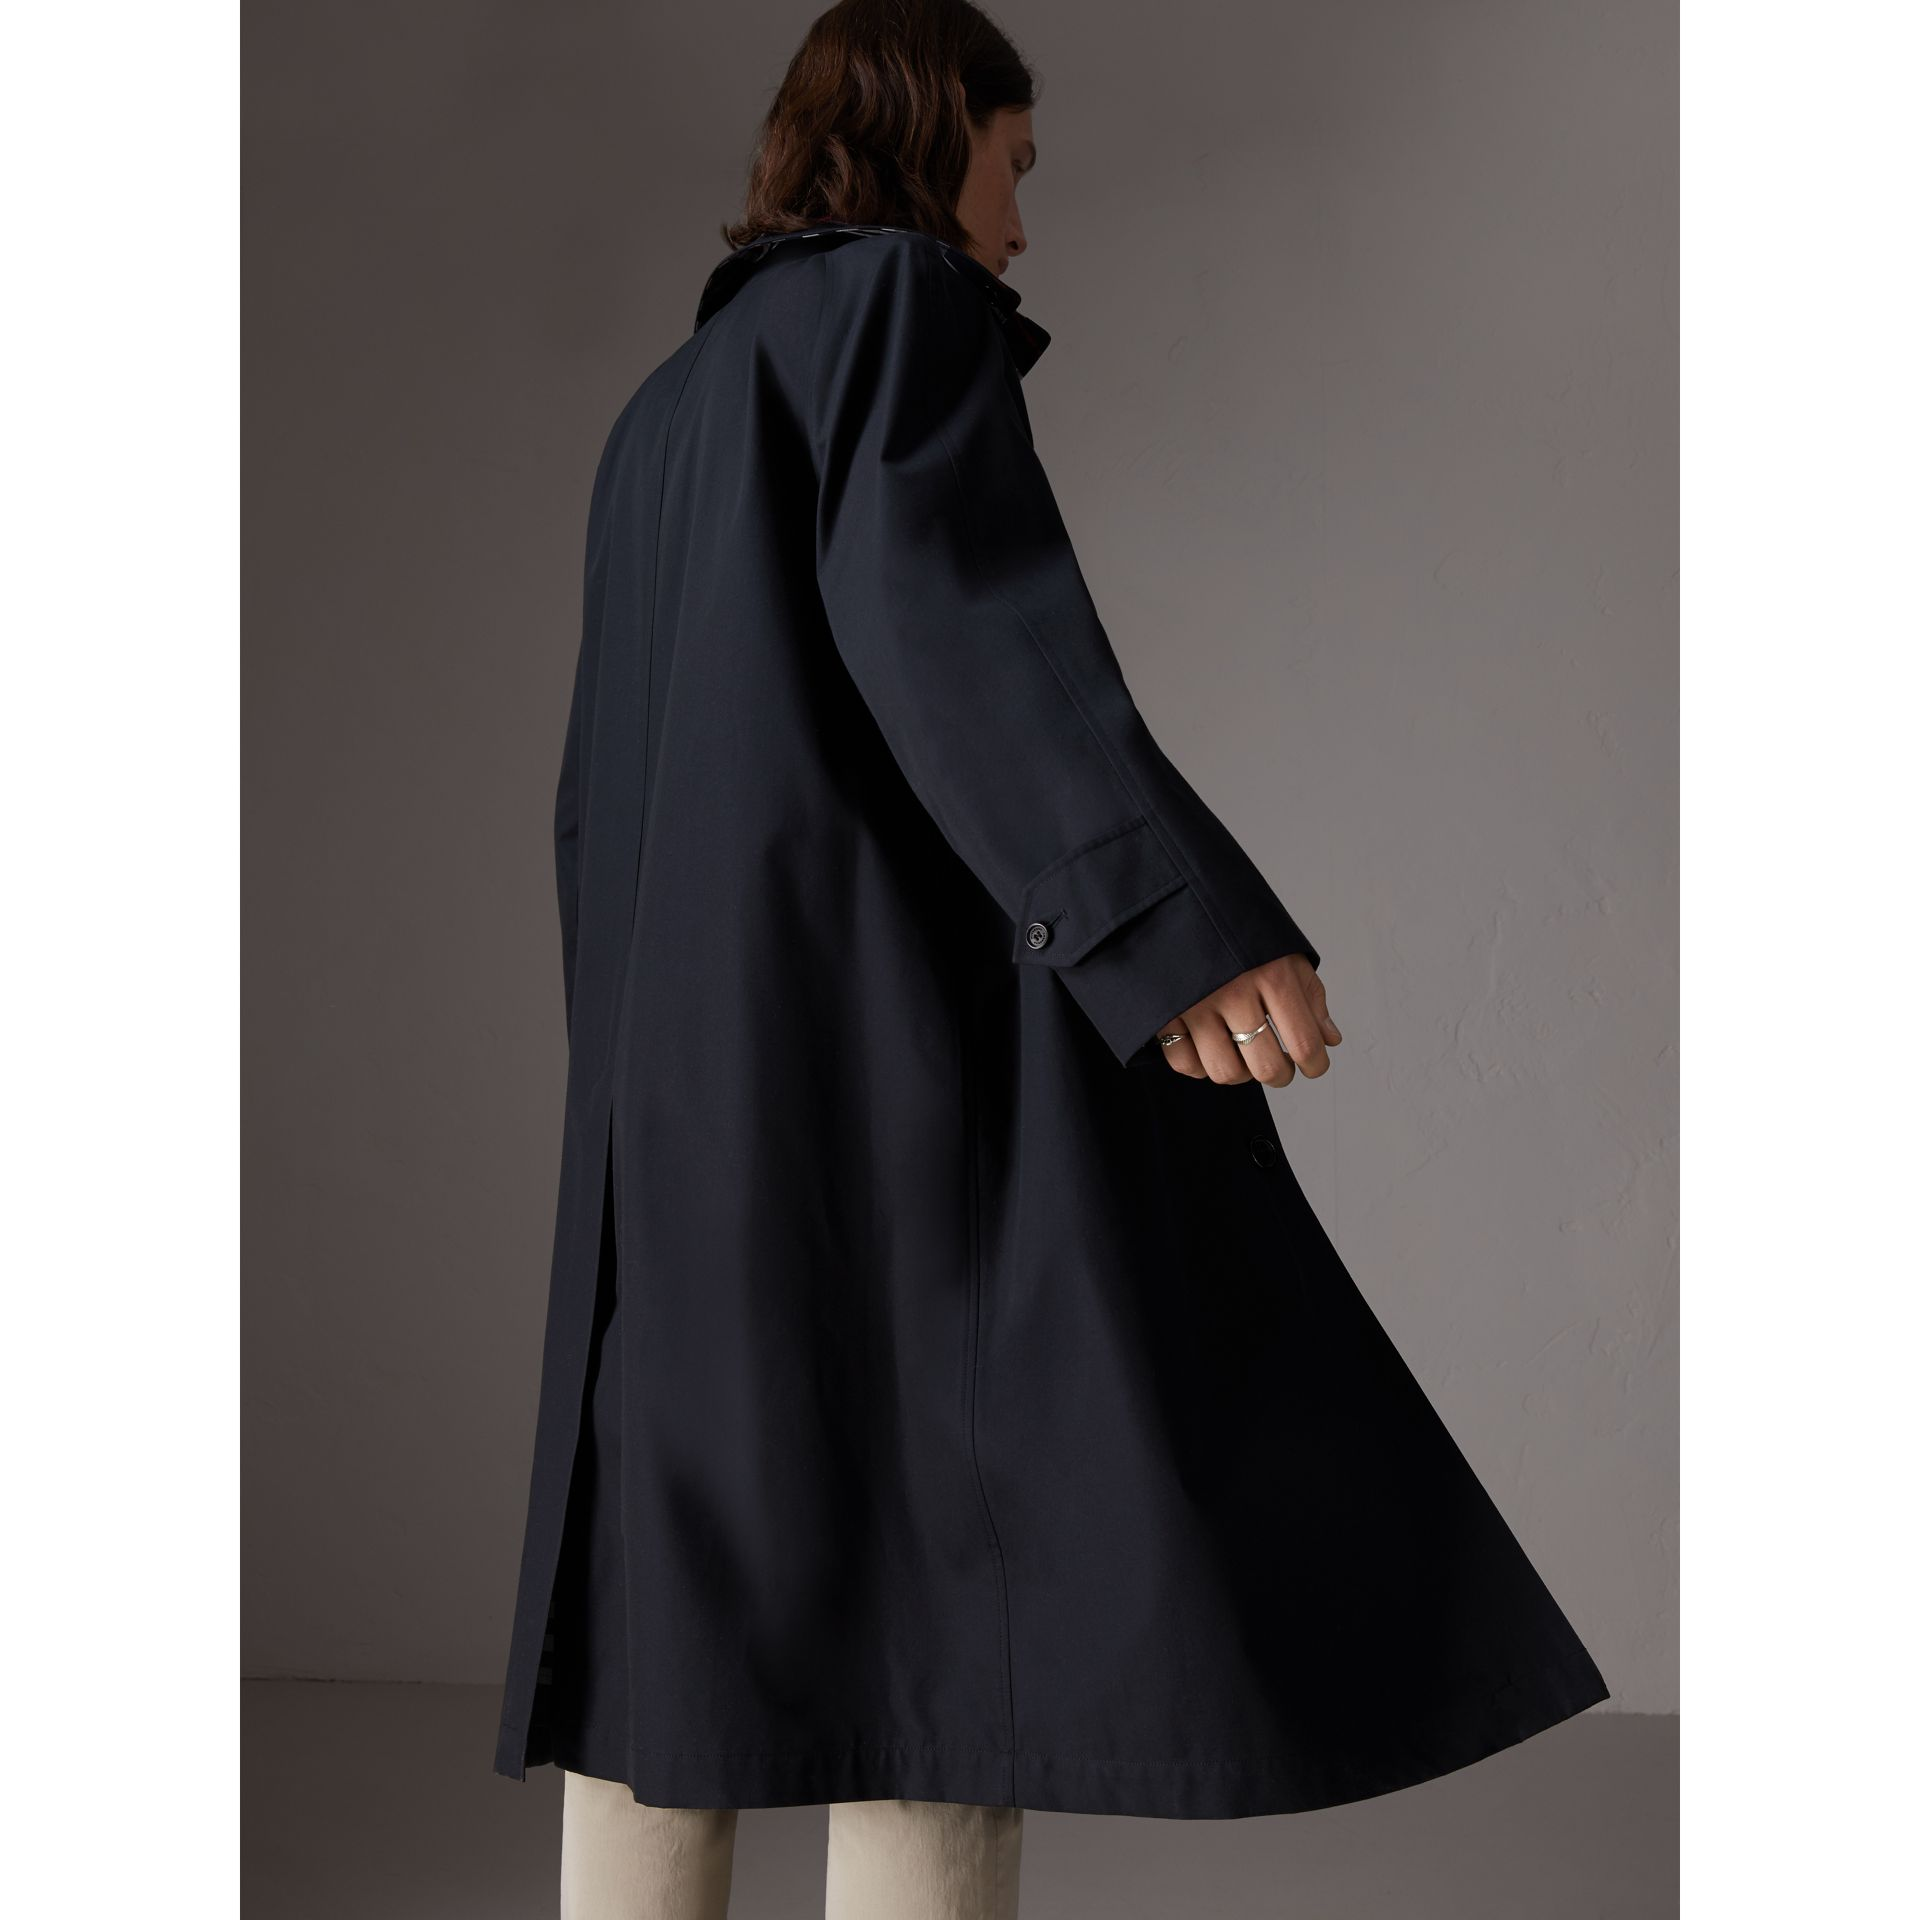 Gosha x Burberry Reconstructed Car Coat in Navy | Burberry - gallery image 6